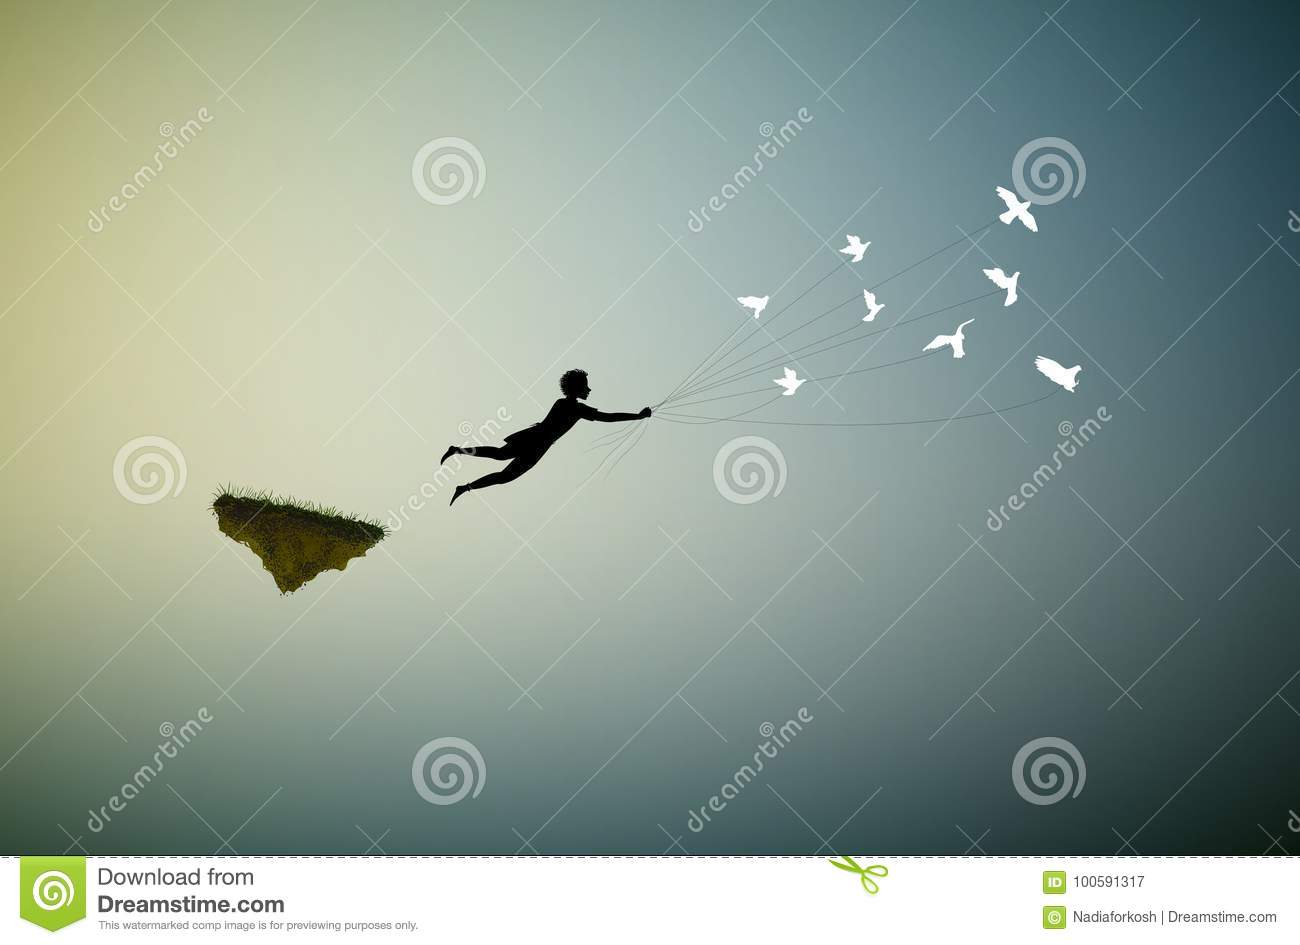 Boy is flying away and holding pigeons, fly in the dream land,fly away, shadows,